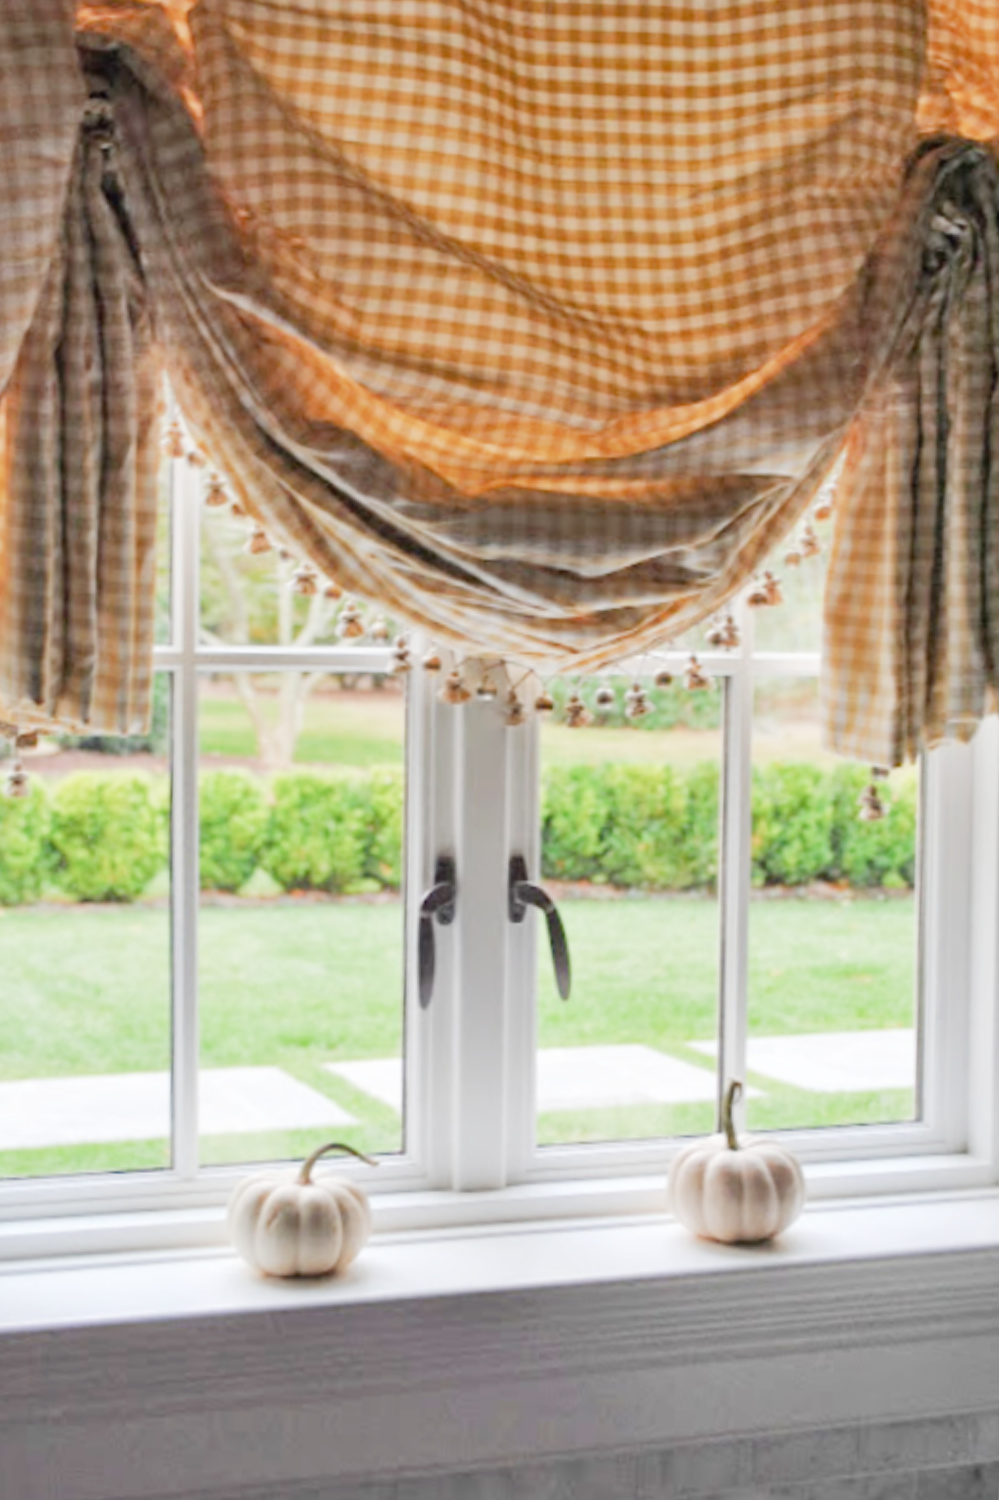 French country balloon valance window treatment in Tina's beautiful home - The Enchanted Home.